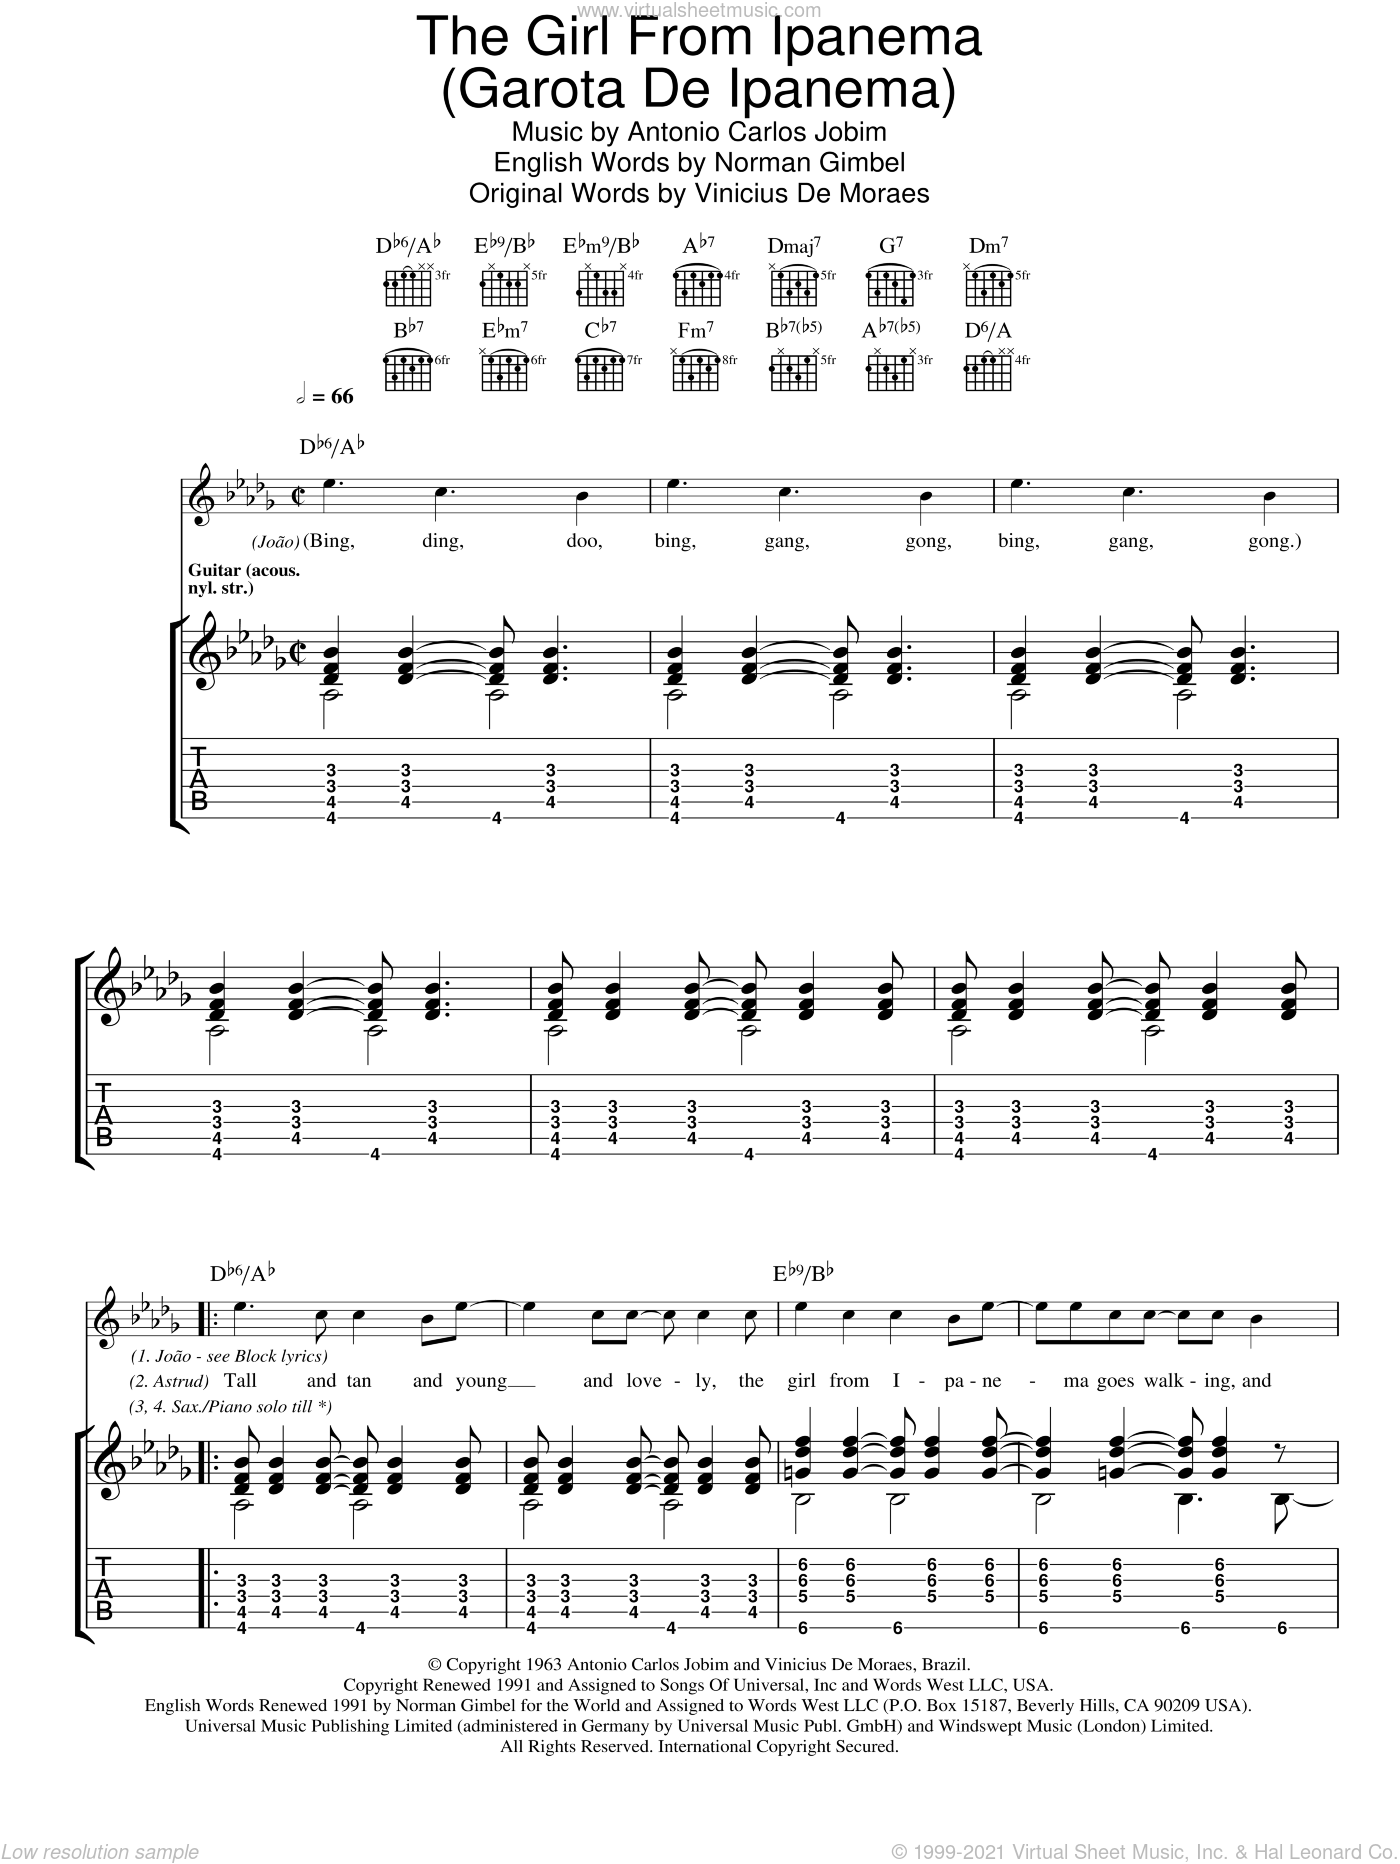 The Girl From Ipanema (Garota De Ipanema) sheet music for guitar (tablature) by Vinicius de Moraes